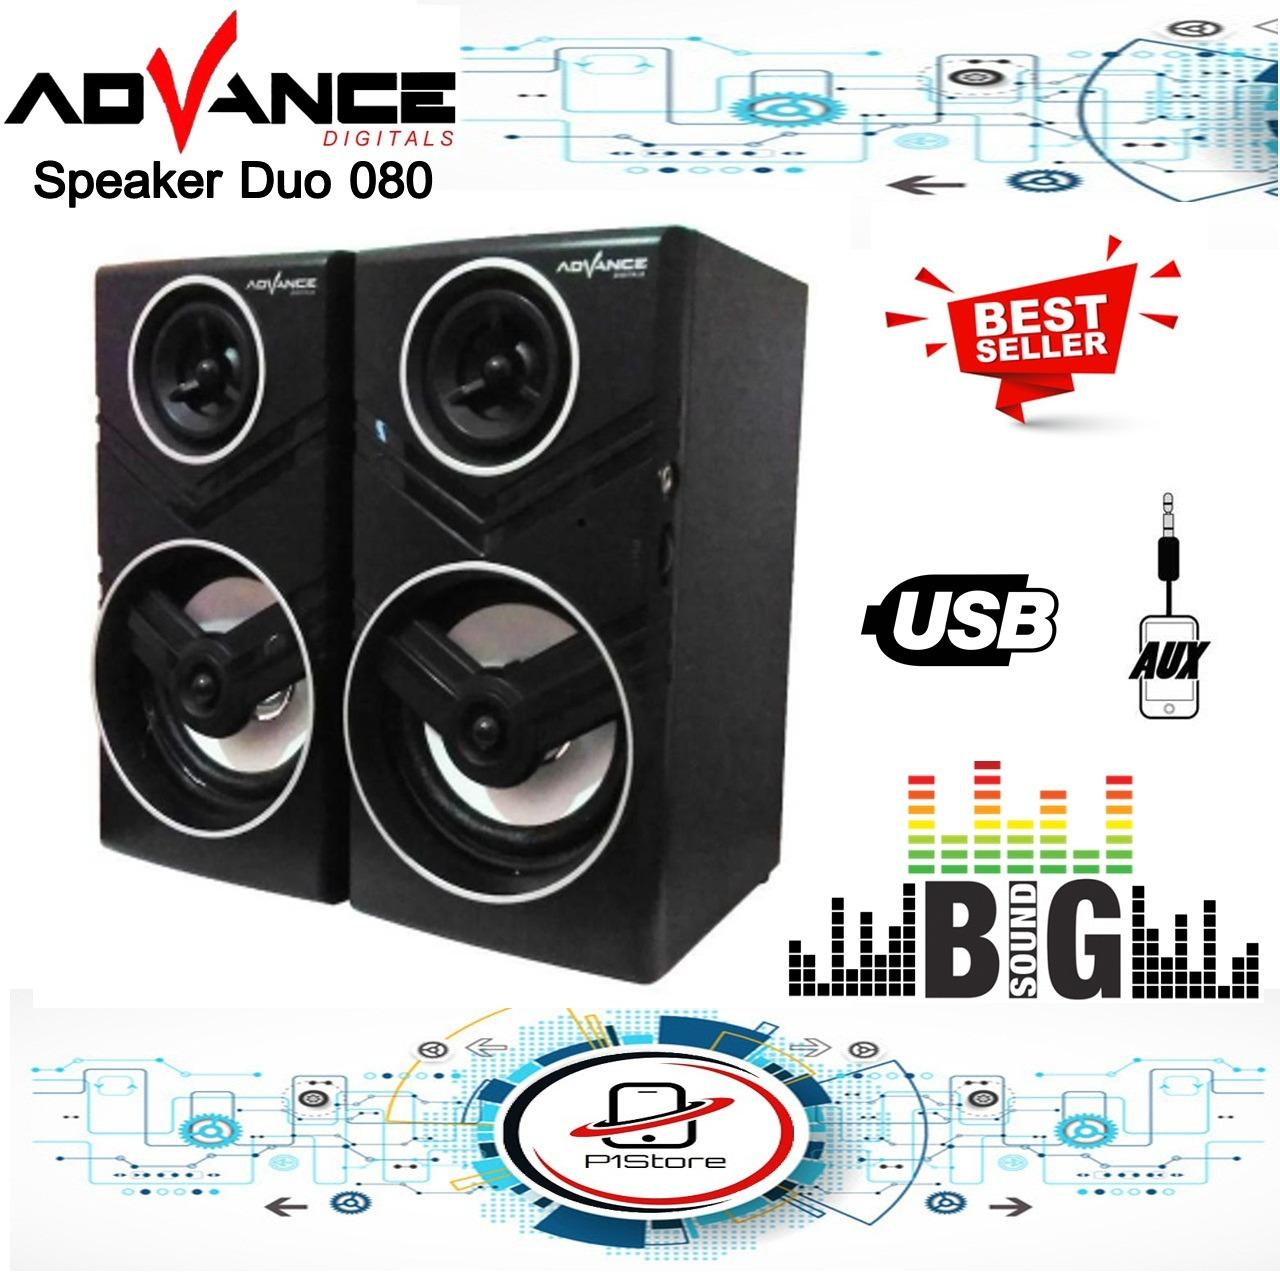 Advance Speaker Duo - 080 Portable Multimedia Speaker 2.0 With Volume Control